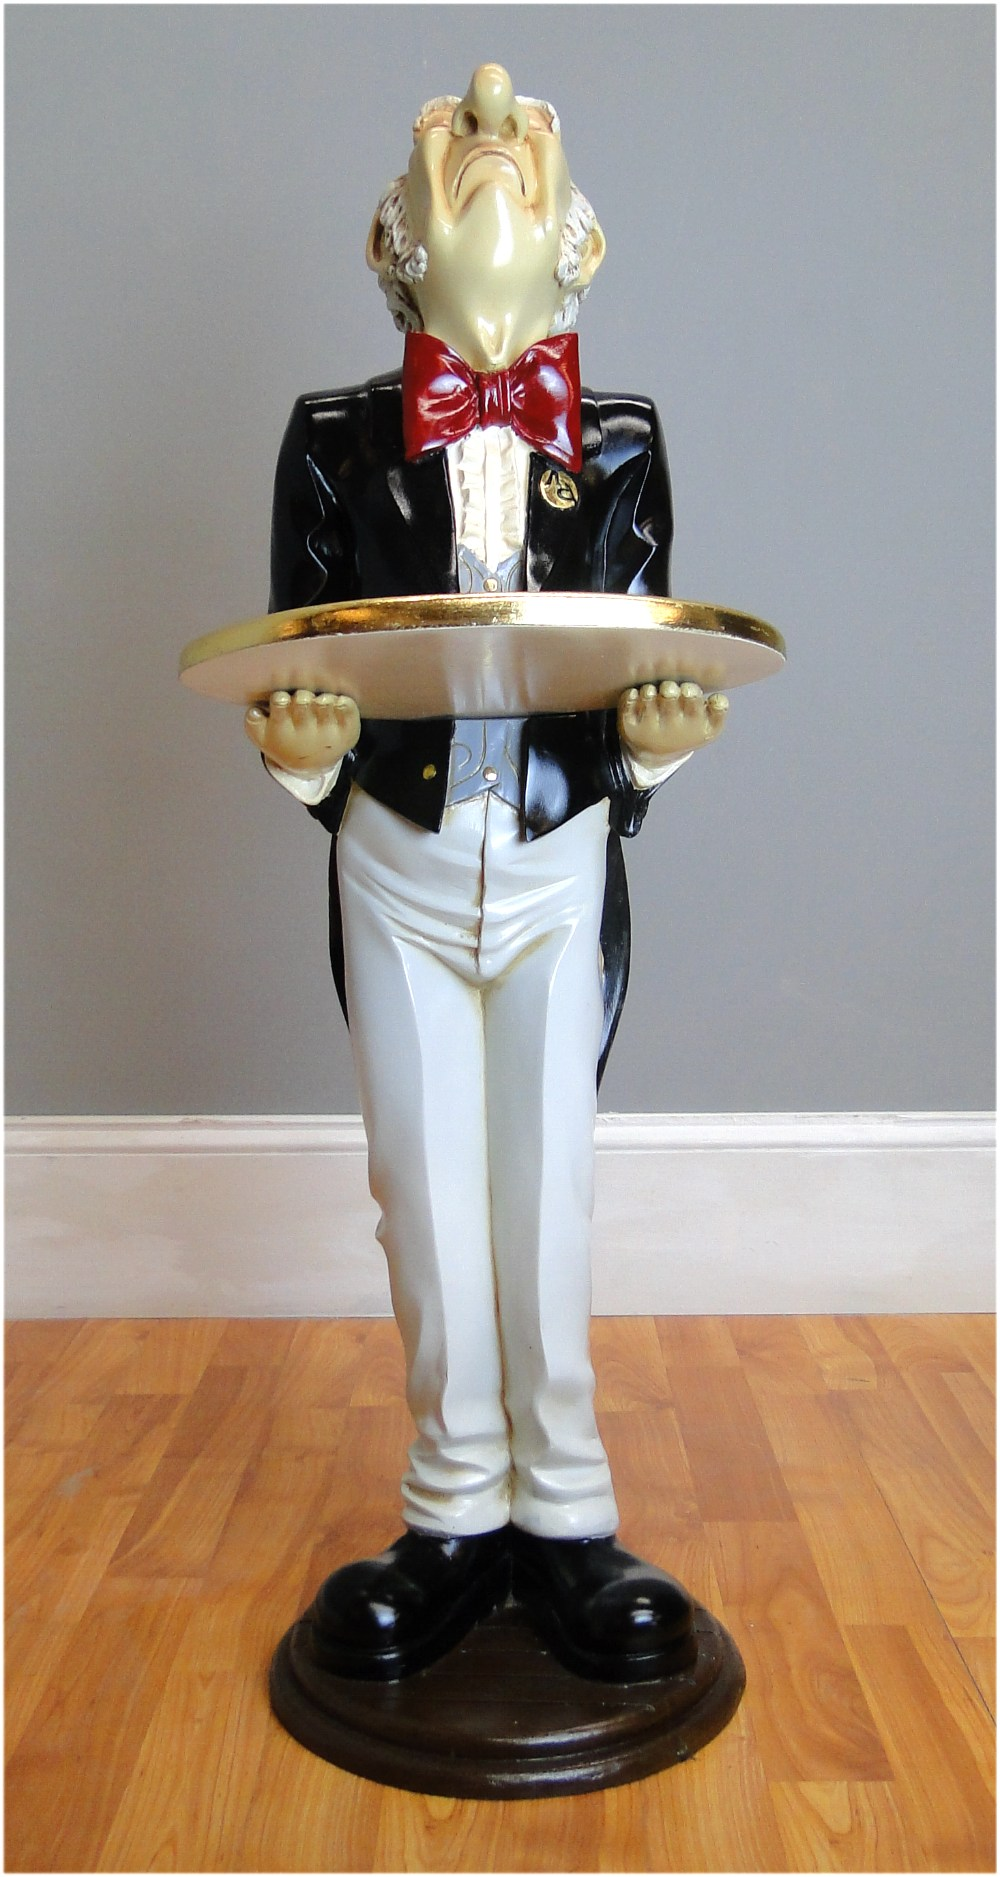 3 Tall Snobby Butler Statue Wine Waiter With Gold Leaf